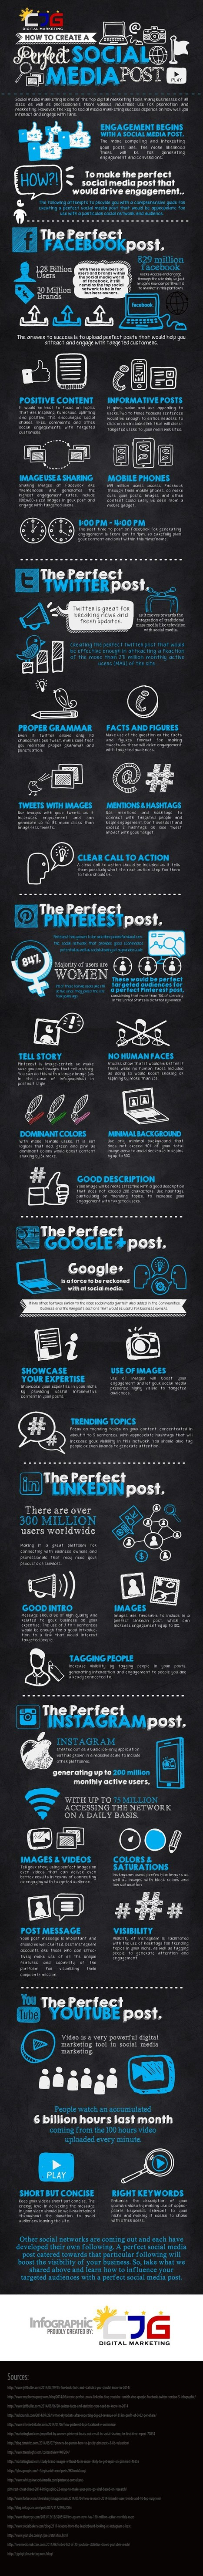 Facebook, Twitter, Pinterest, Instagram: How to Write the Perfect Post | Digital Matters | Scoop.it